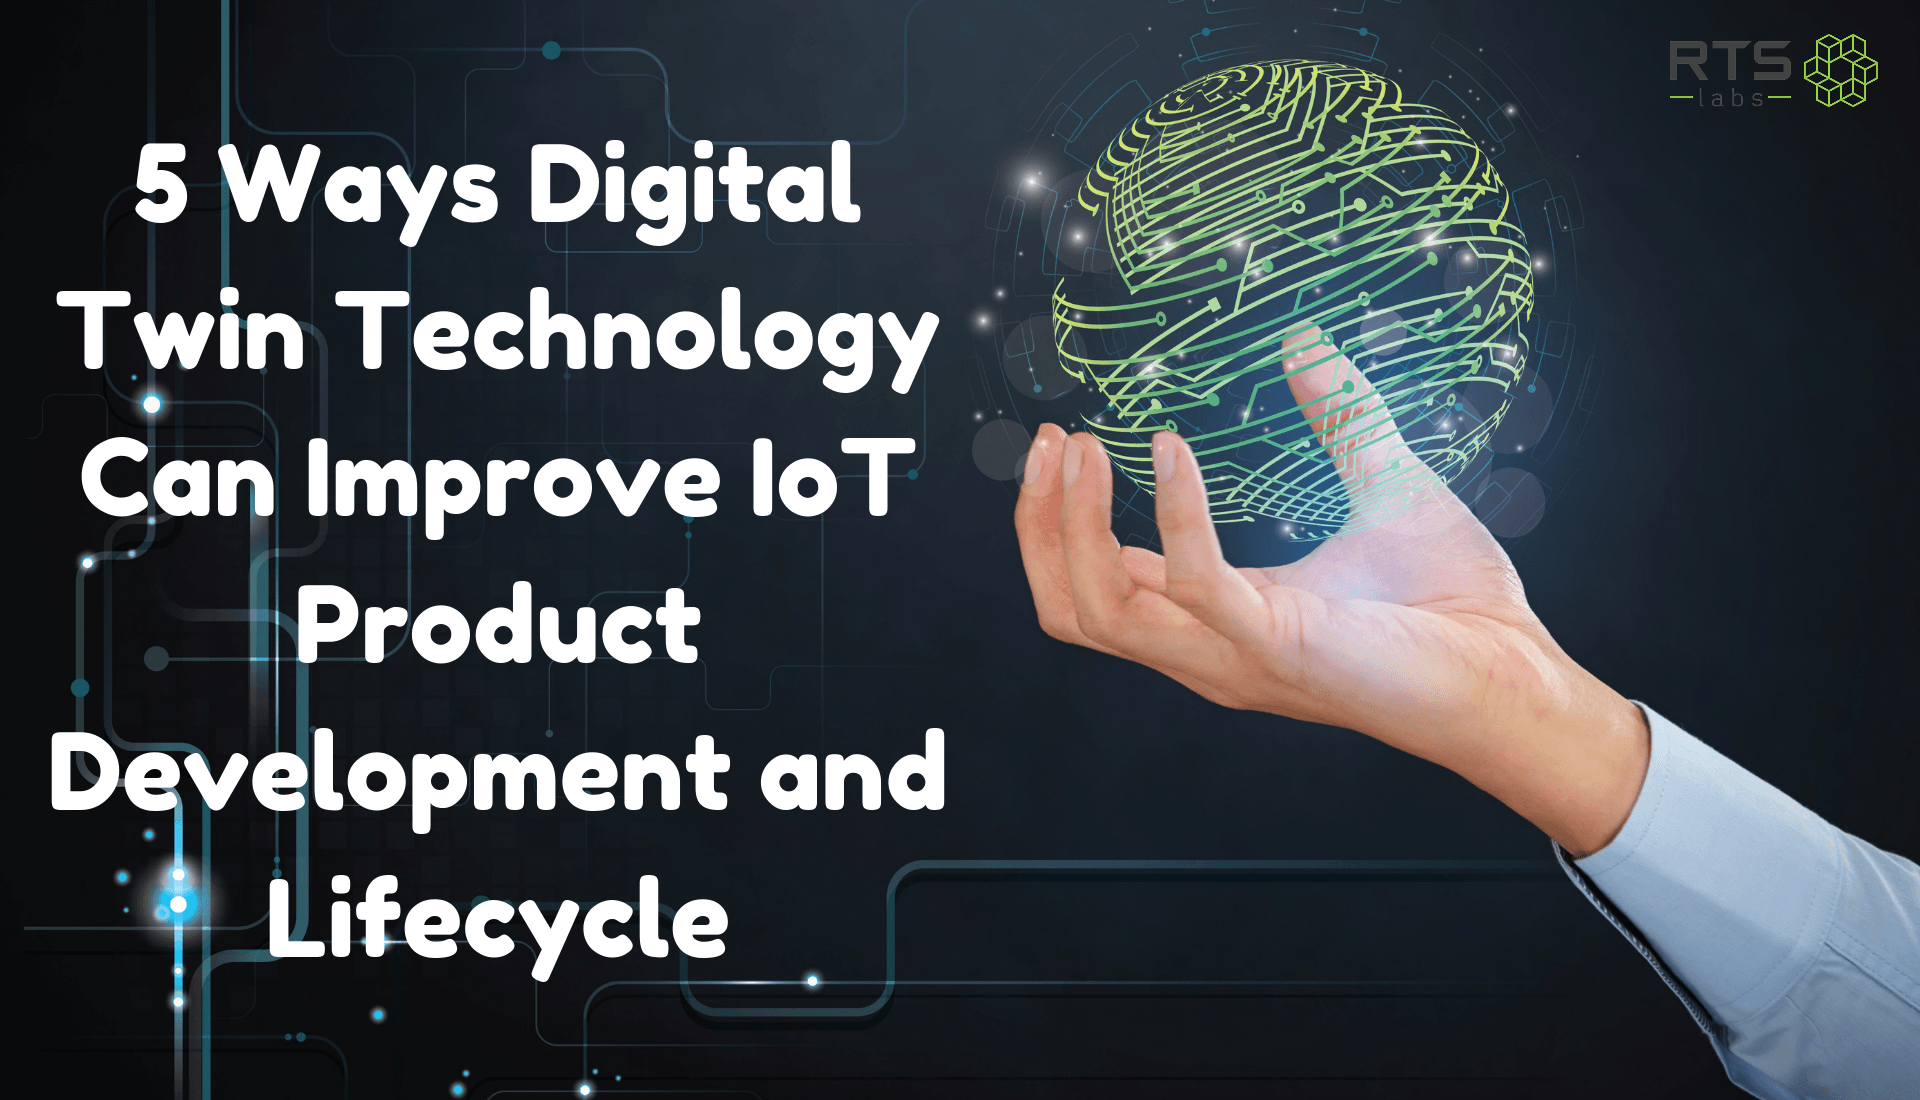 5 ways digital twin technology can improve IoT product development and lifecycle